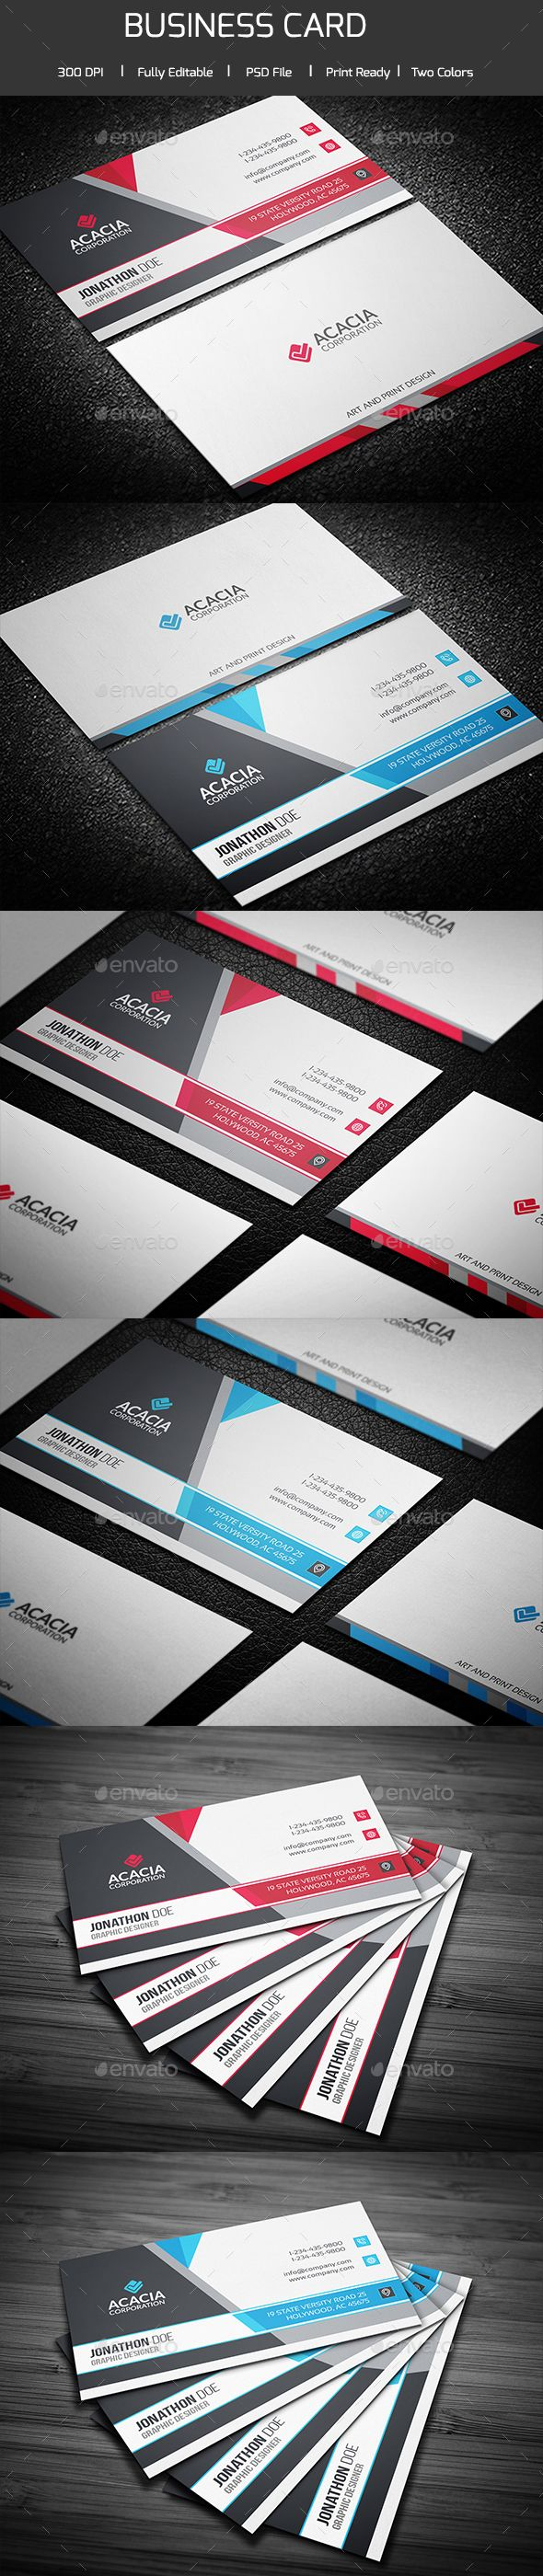 Business Card Template PSD. Download here: http://graphicriver.net/item/business-card/14780285?ref=ksioks